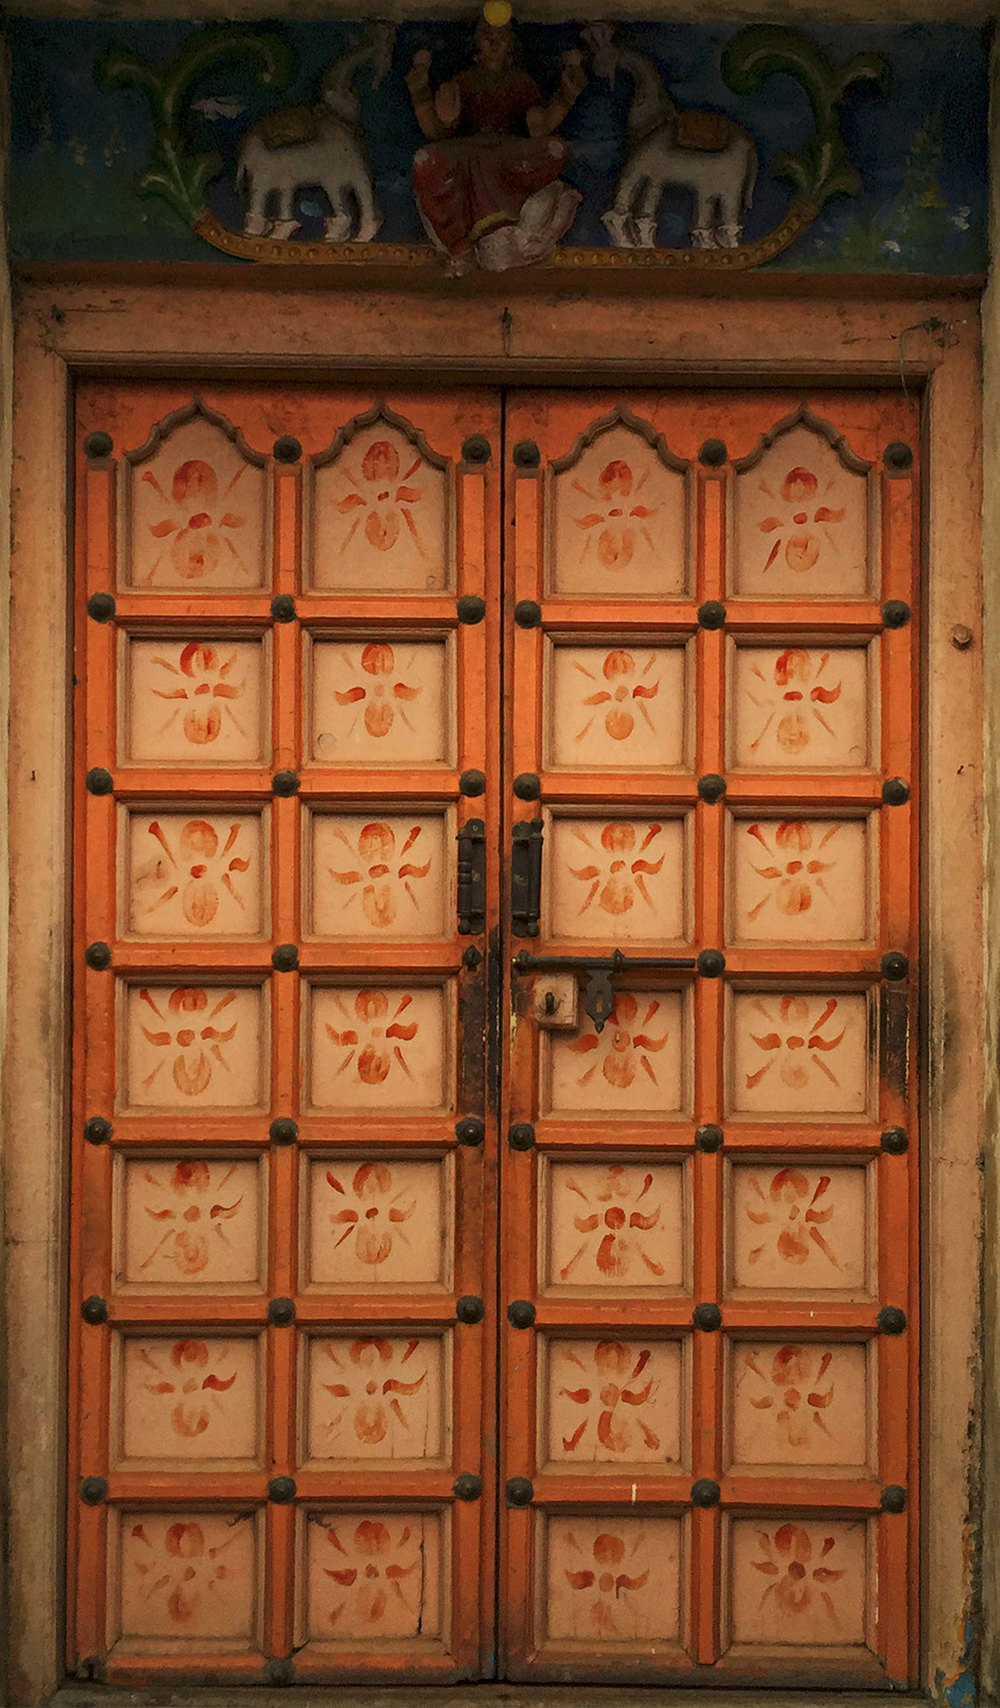 Detail of the doors of the little Krishna temple.  Love the pattern.